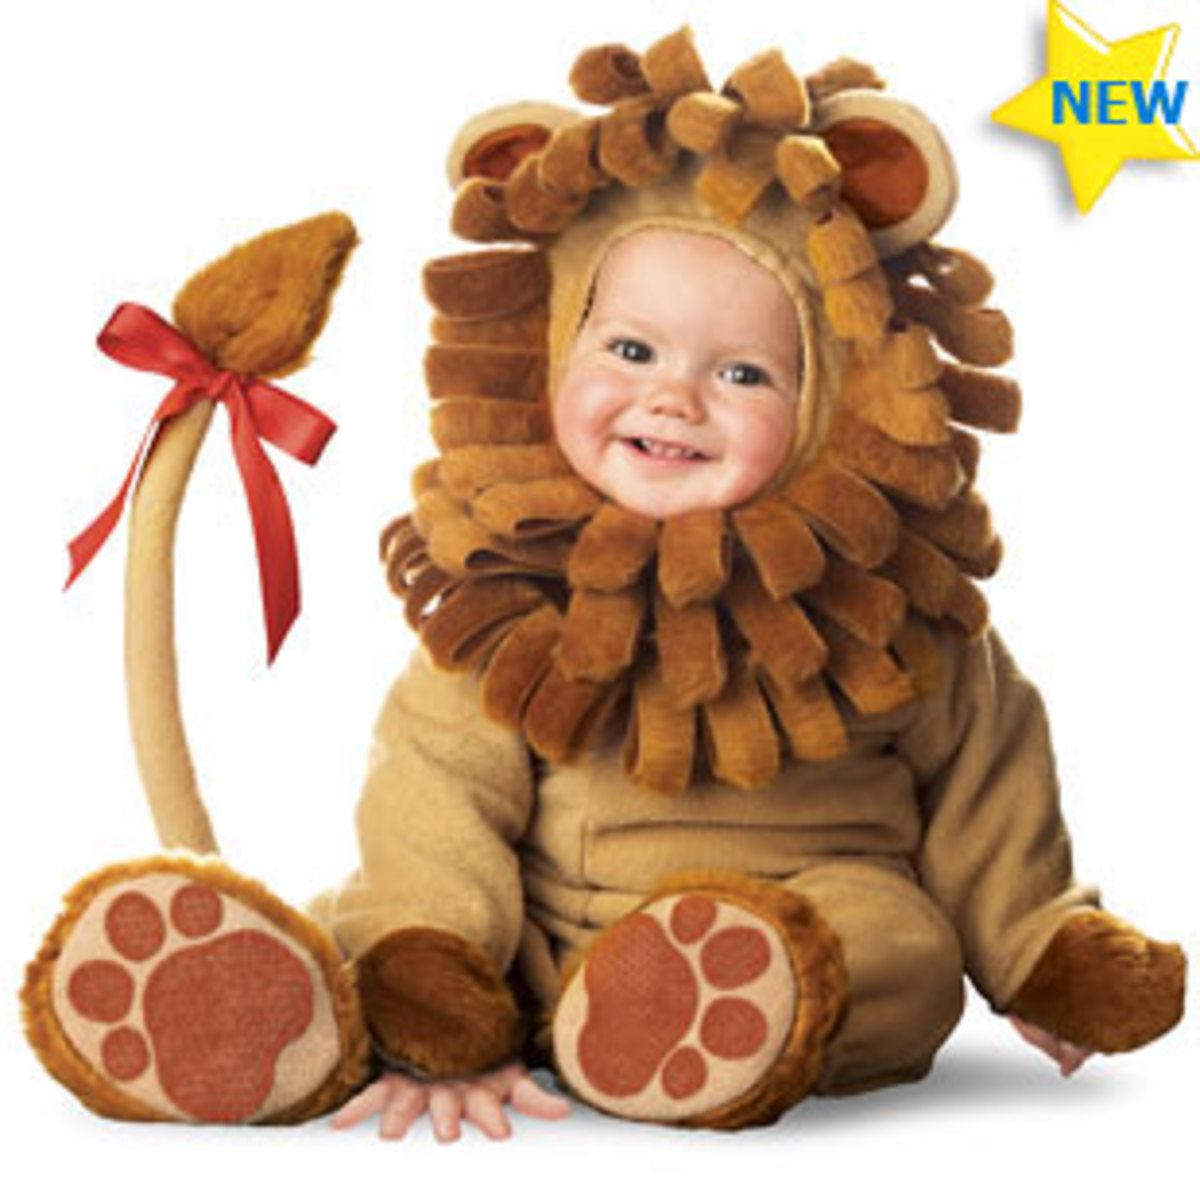 Top Ten Cheap Halloween Costumes for infants, babies, kids and toddlers